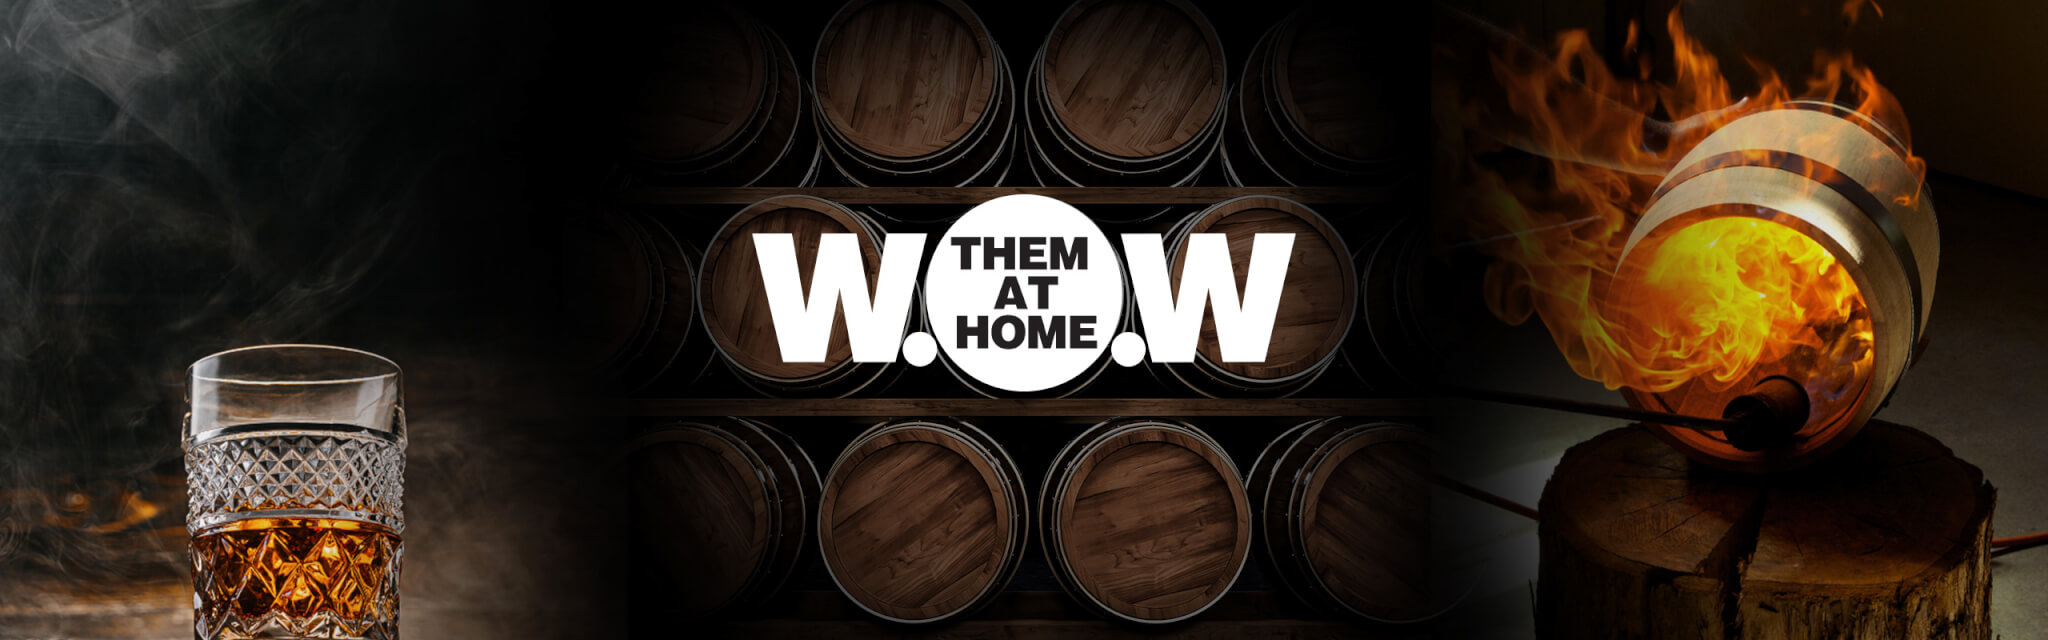 WOW THEM AT HOME - PEATED EXPERIENCE